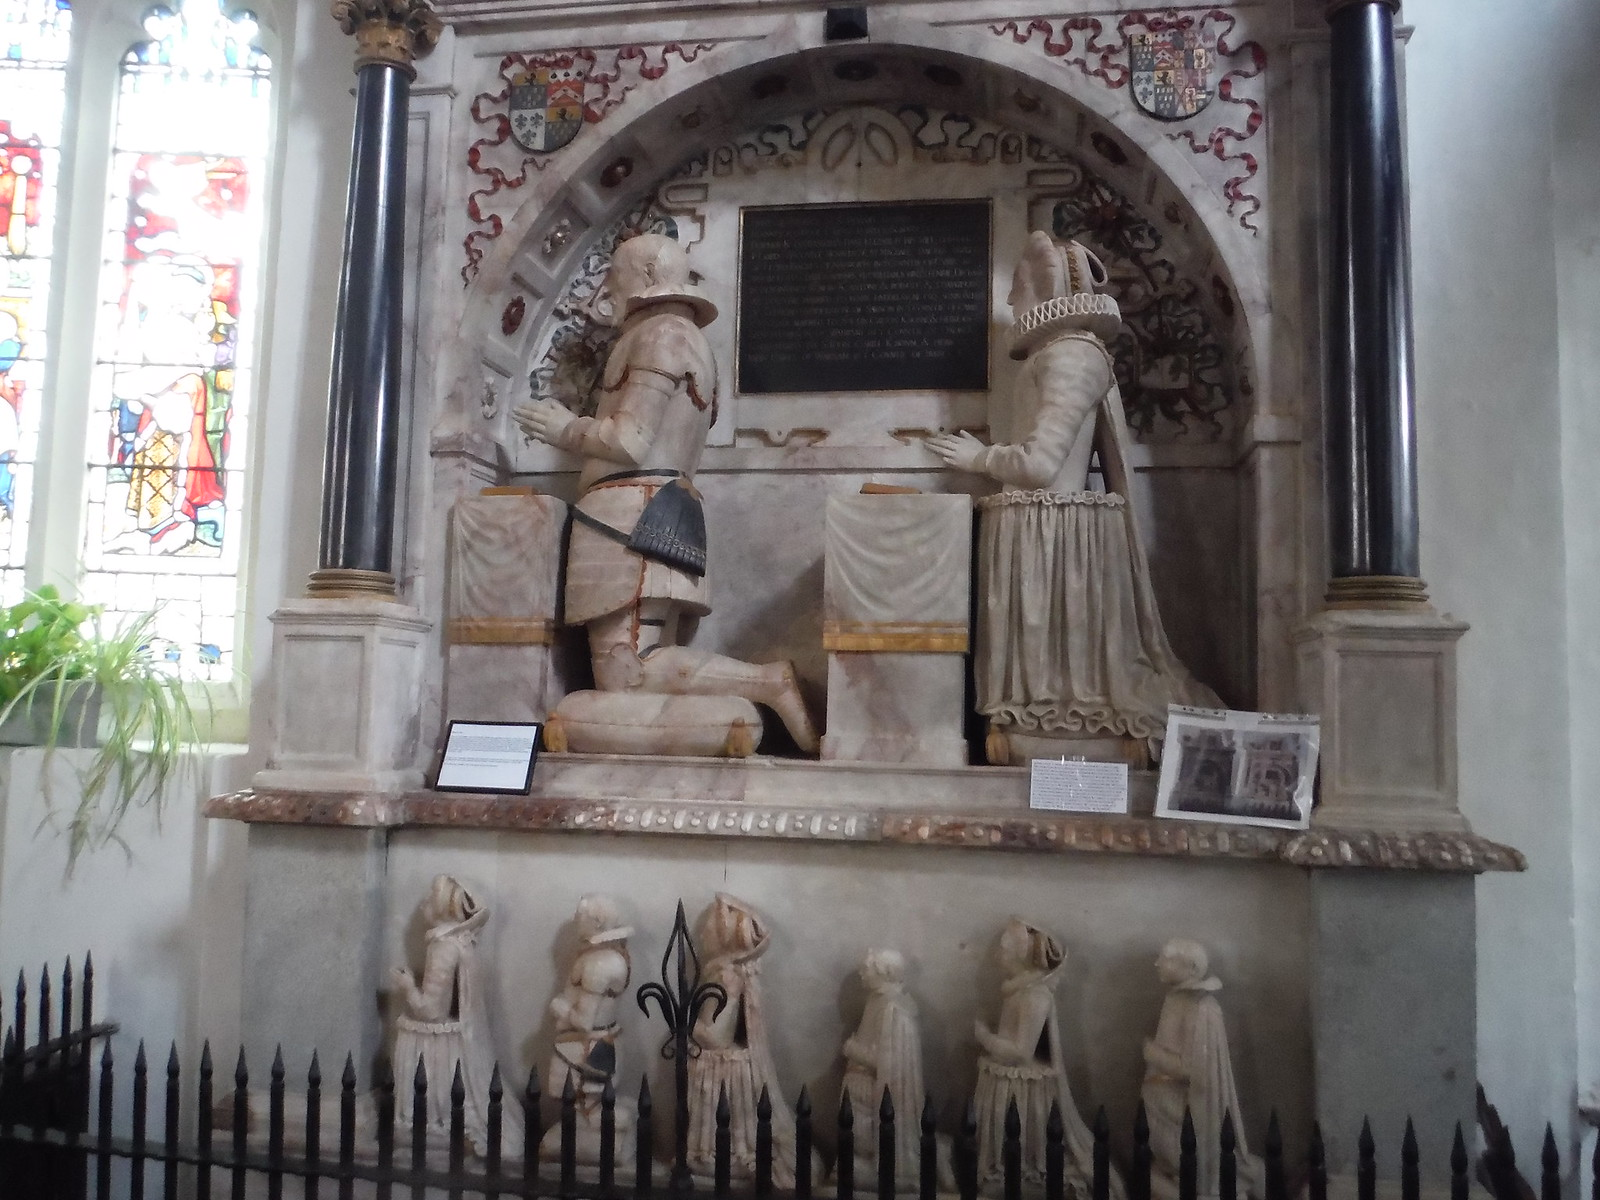 1616 Monument to Robert, Lord Dormer & Family, All Saints, Wing SWC Walk Cheddington to Leighton Buzzard